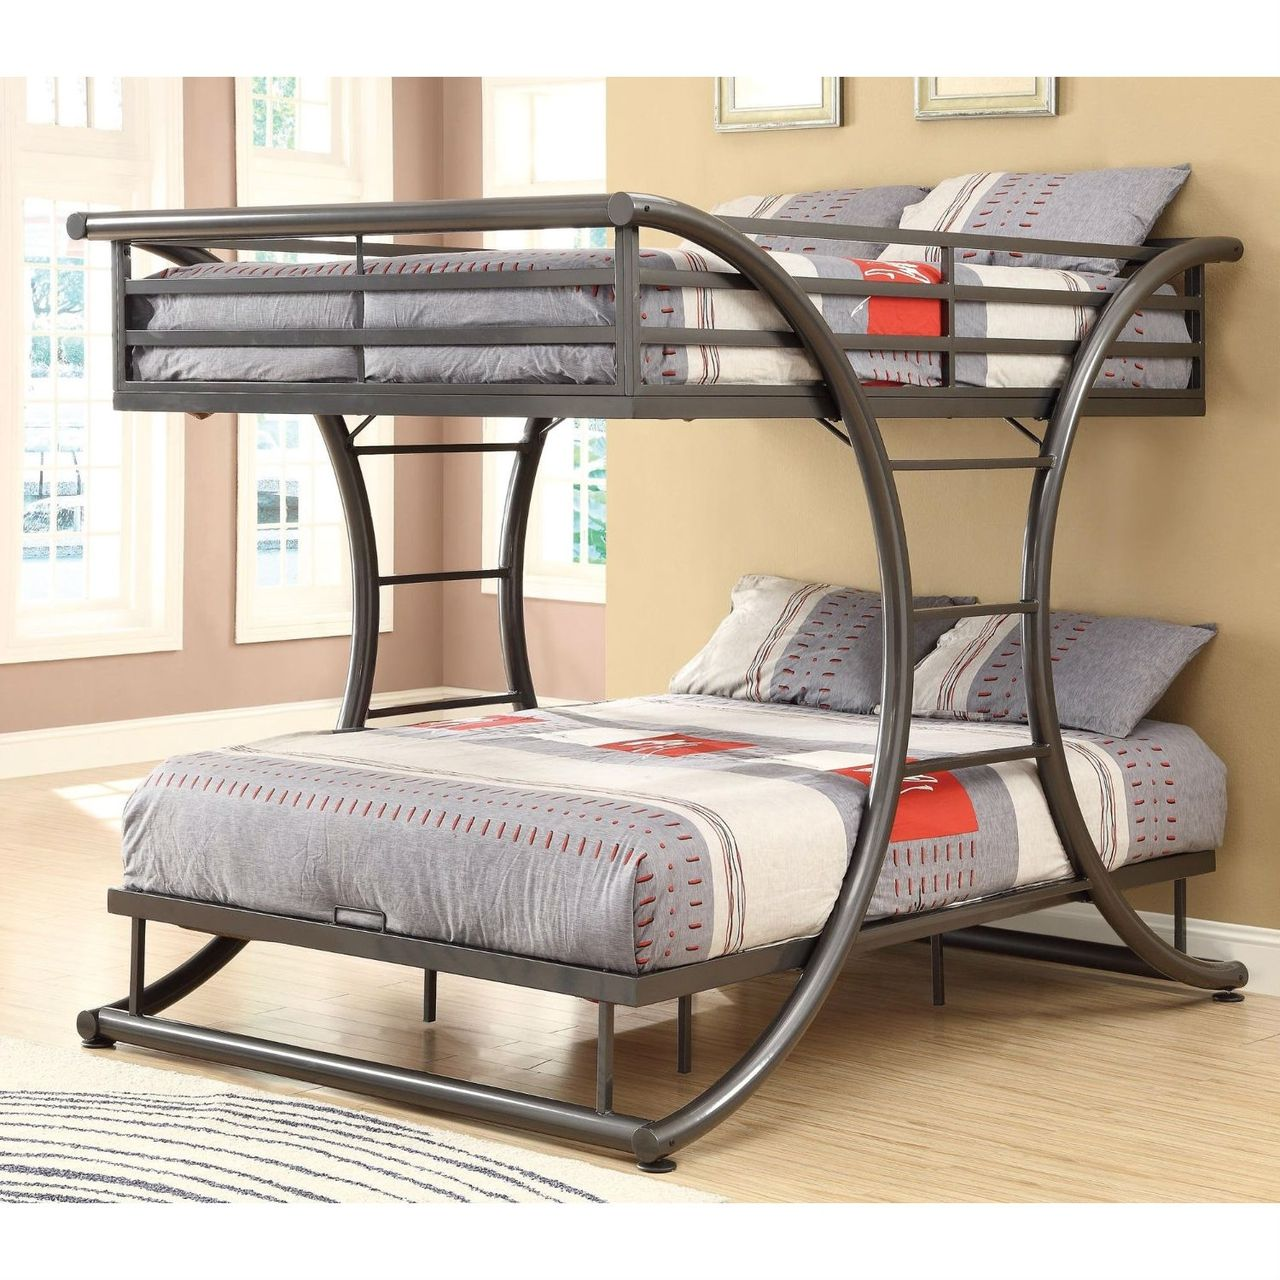 Full Over Full Size Modern Metal Bunk Bed Frame In Gunmetal Finish